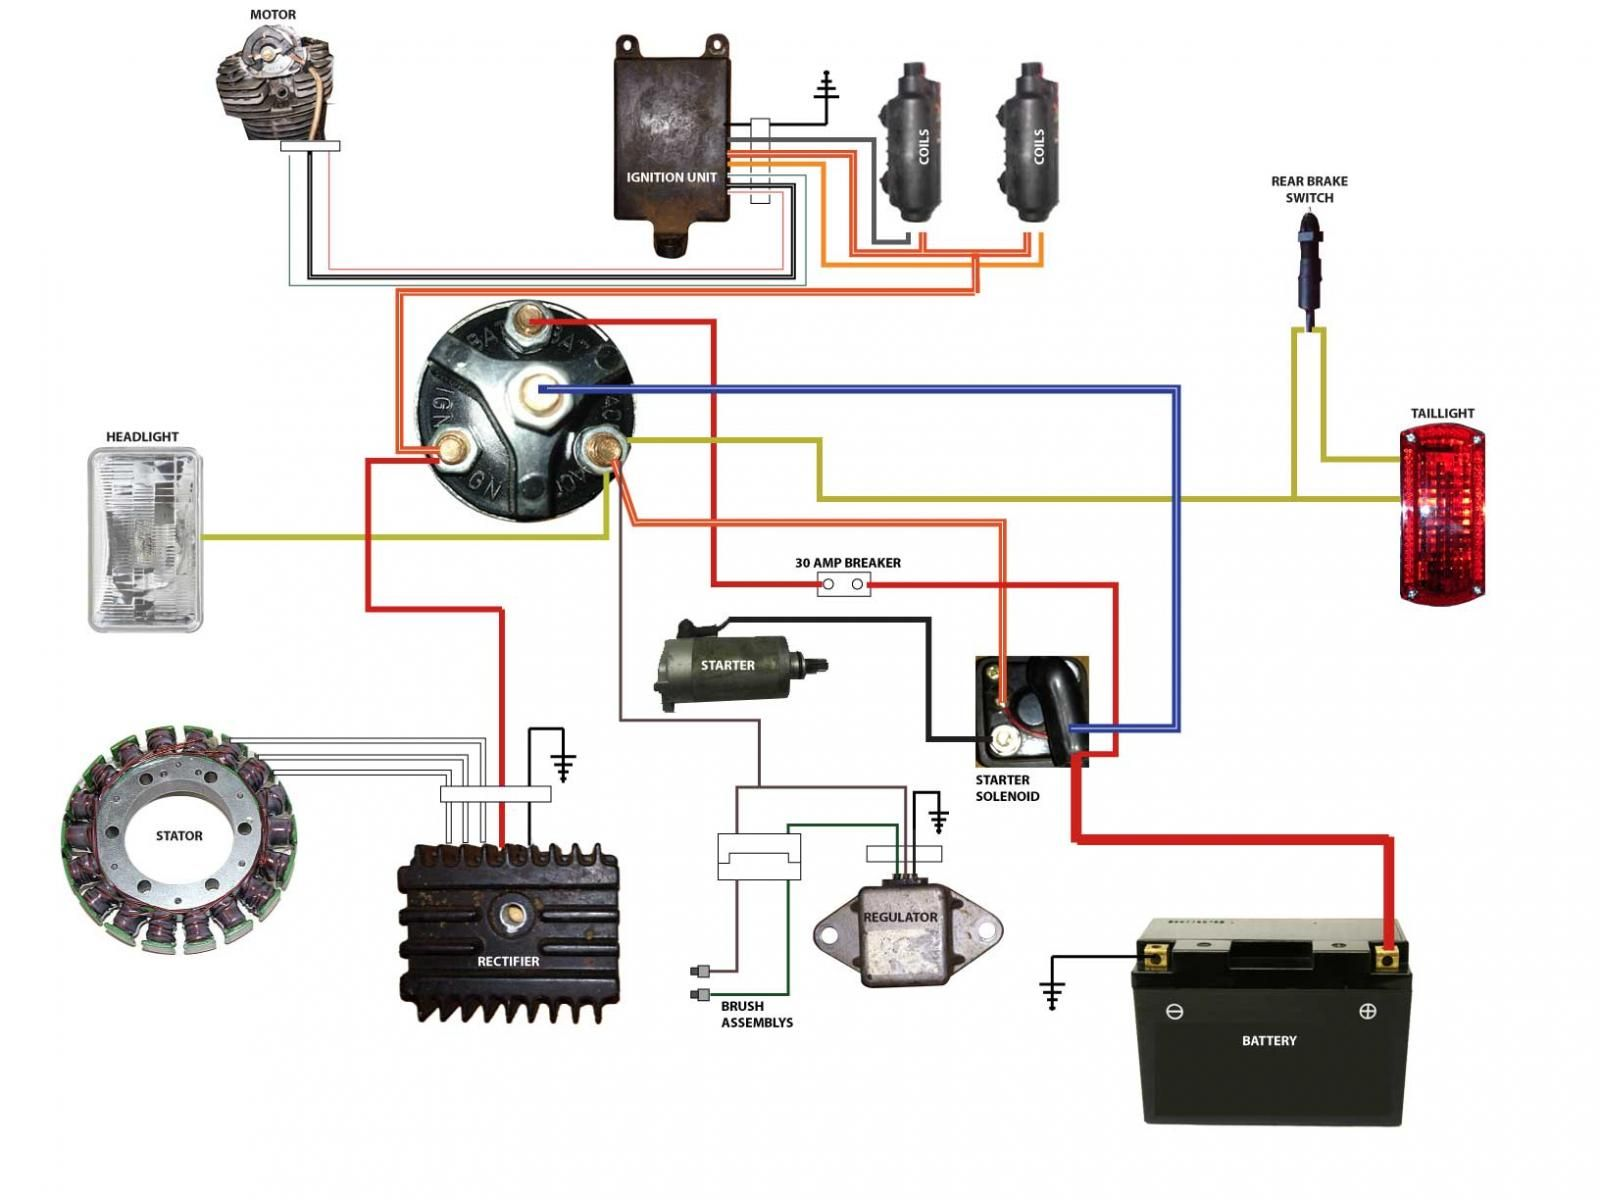 simplified wiring diagram for xs400 cafe projects to try yamaha v star 1100 wiring diagram [ 1600 x 1200 Pixel ]